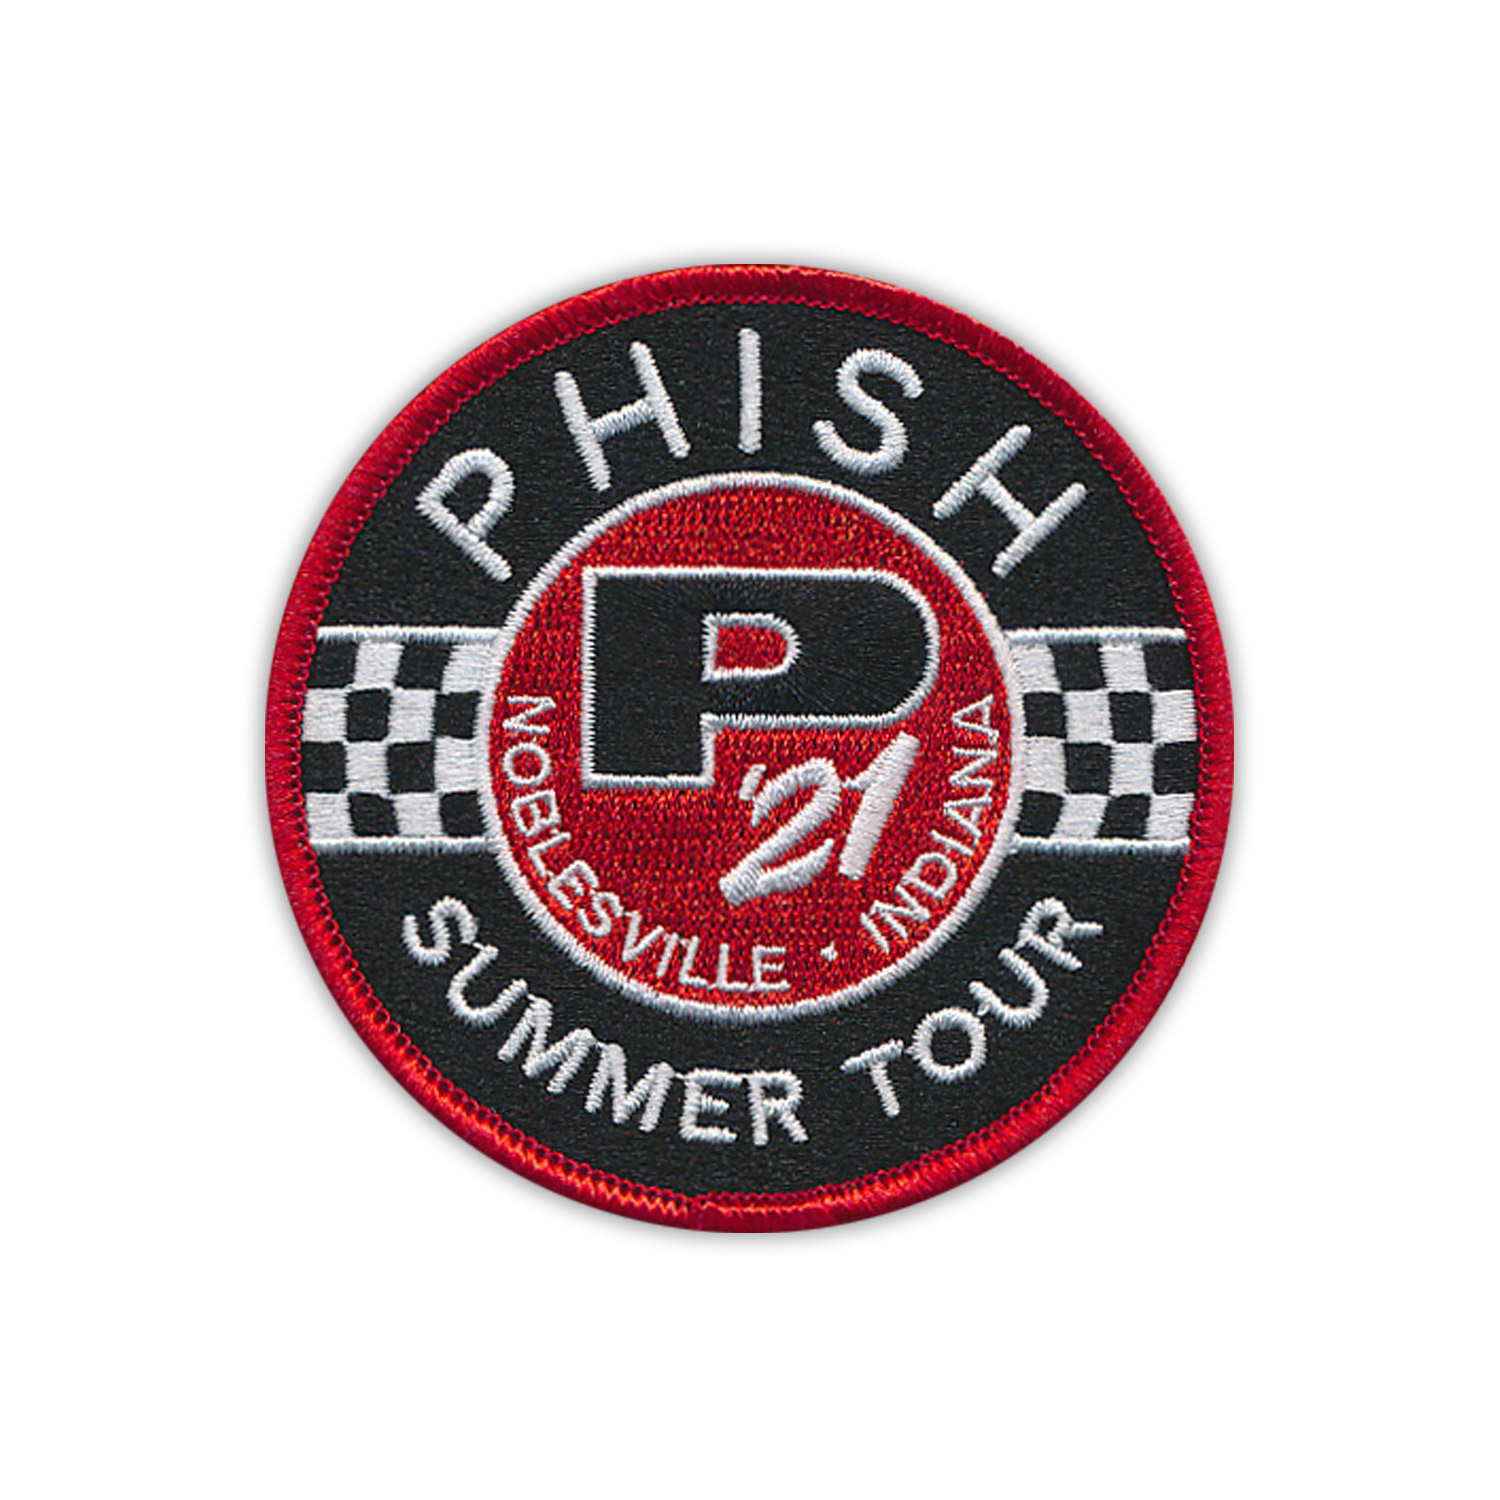 Vintage Auto Rally Patches Summer 2021